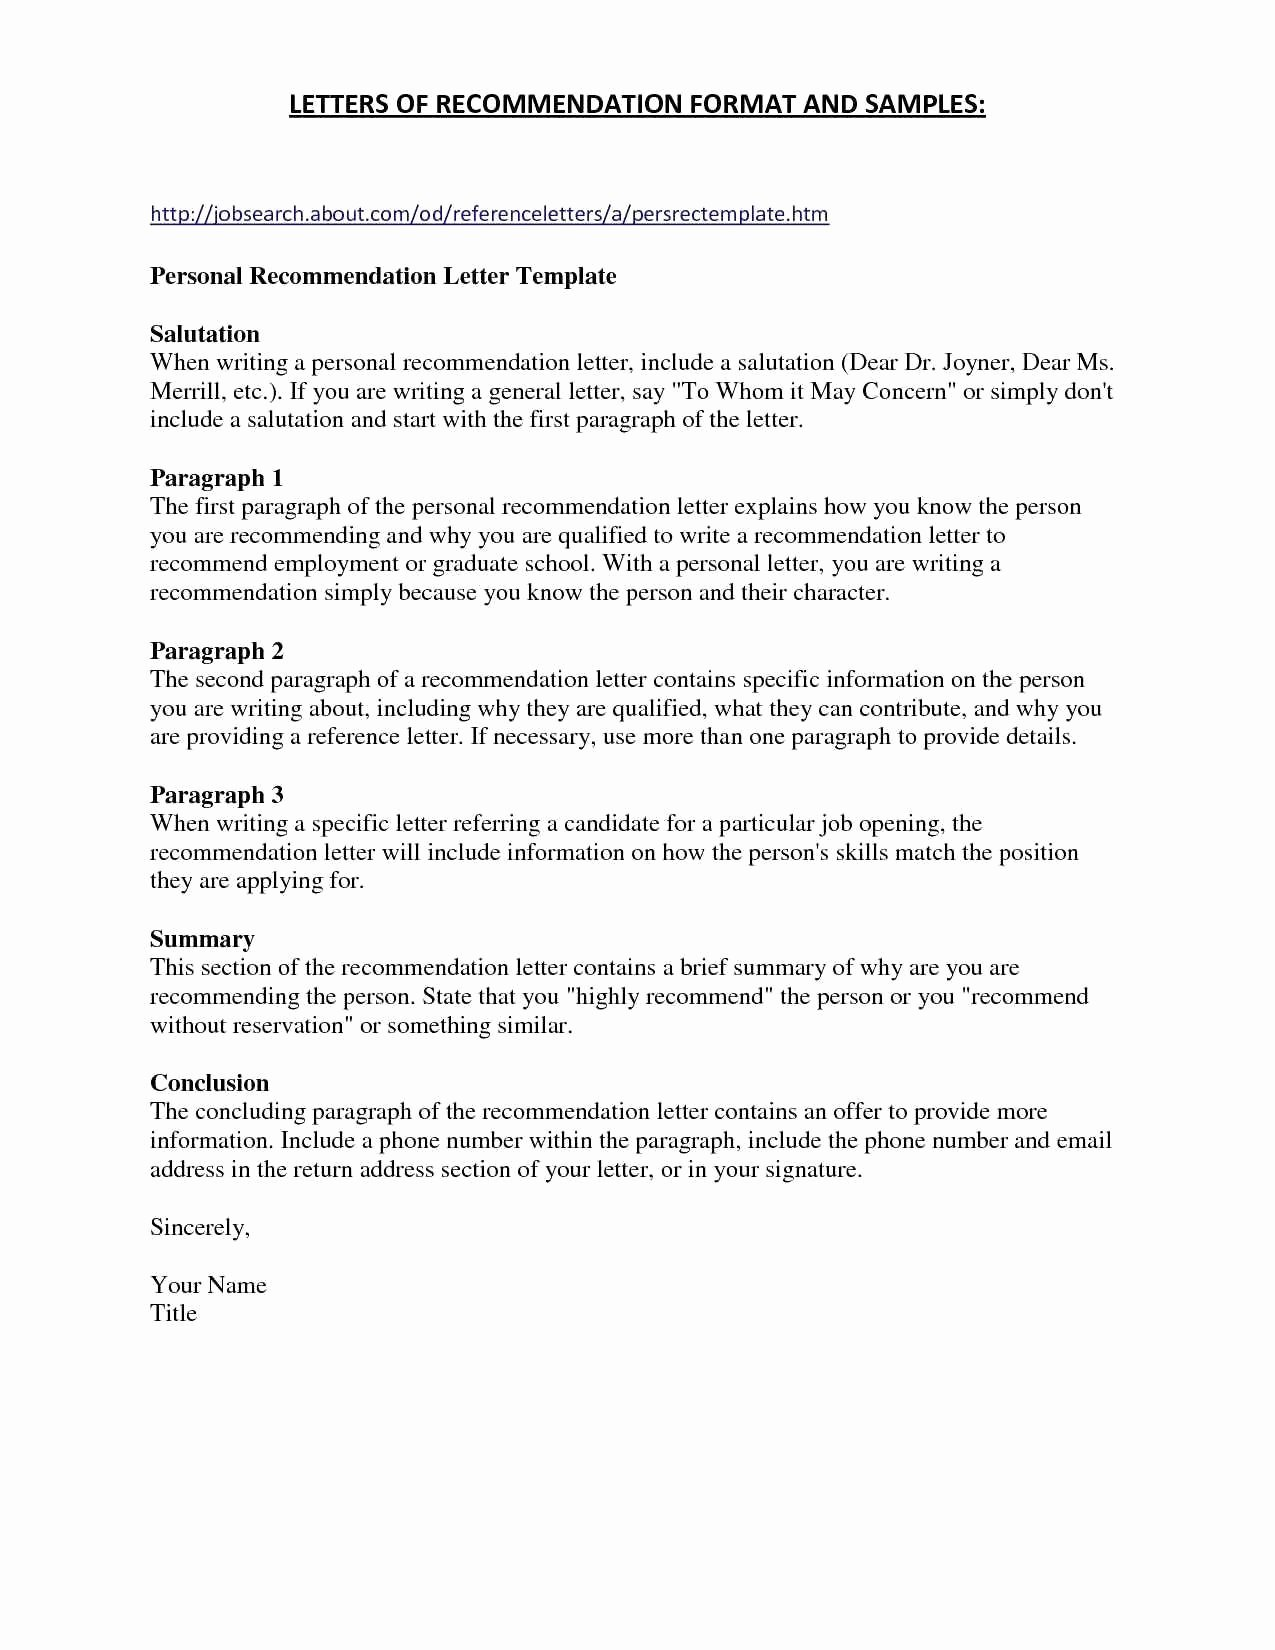 Letter Of Resignation Template Word 2007 Luxury New Block Letter format Microsoft Word 2007